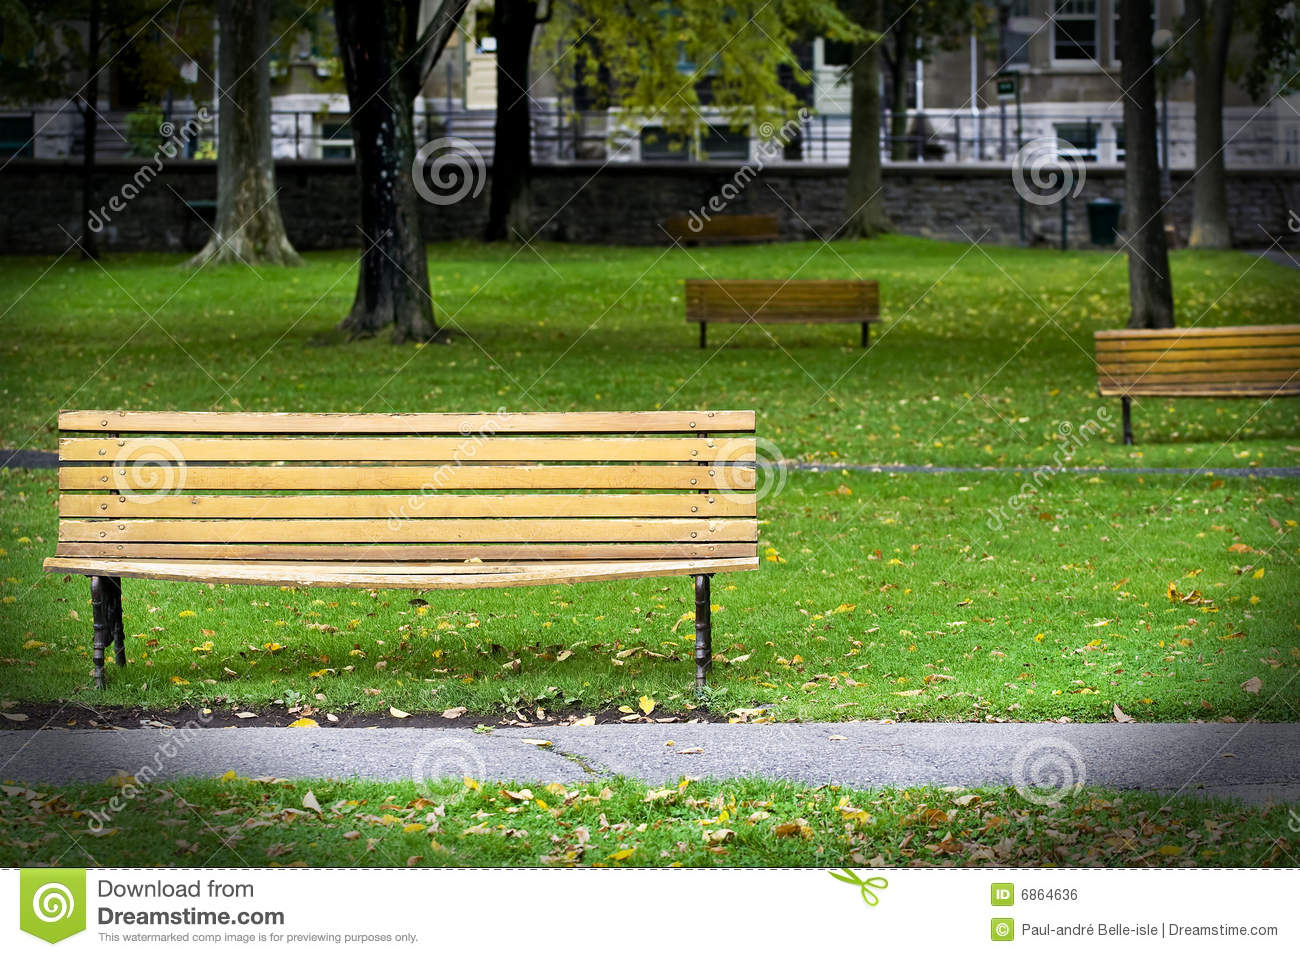 Bench park stock photo. Image of fall, leaf, daylight - 6864636 for Park Background With Bench  61obs